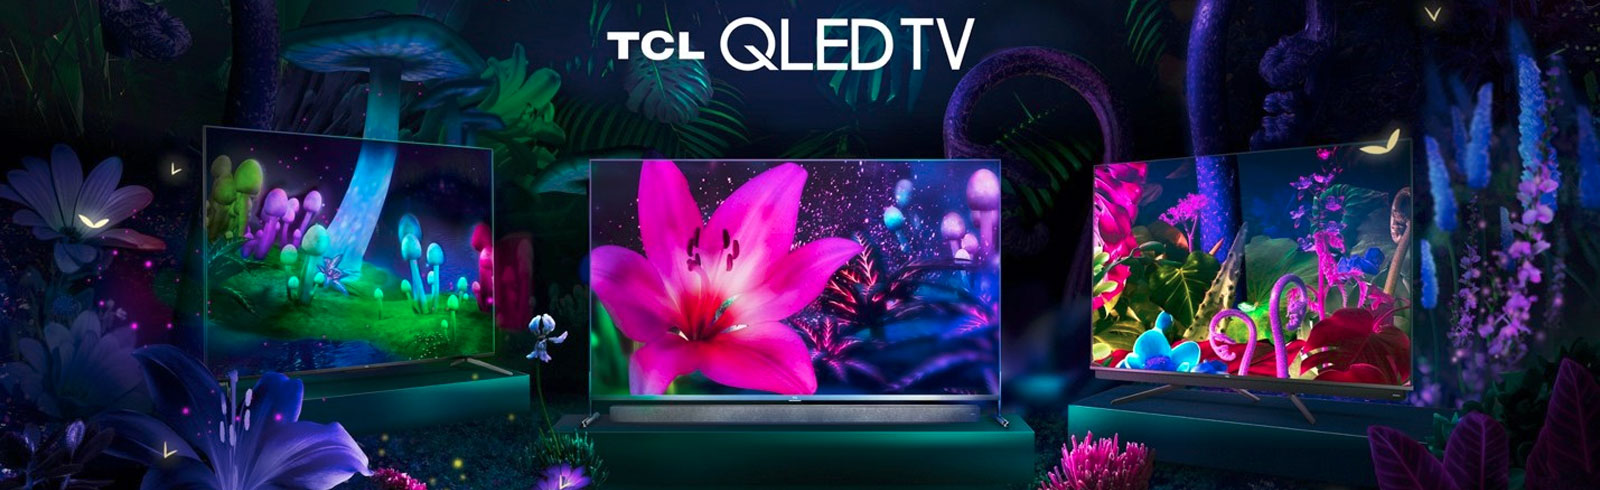 TCL expands its QLED TV lineup with the 8K TCL X915, and the 4K TCL C815 and C715